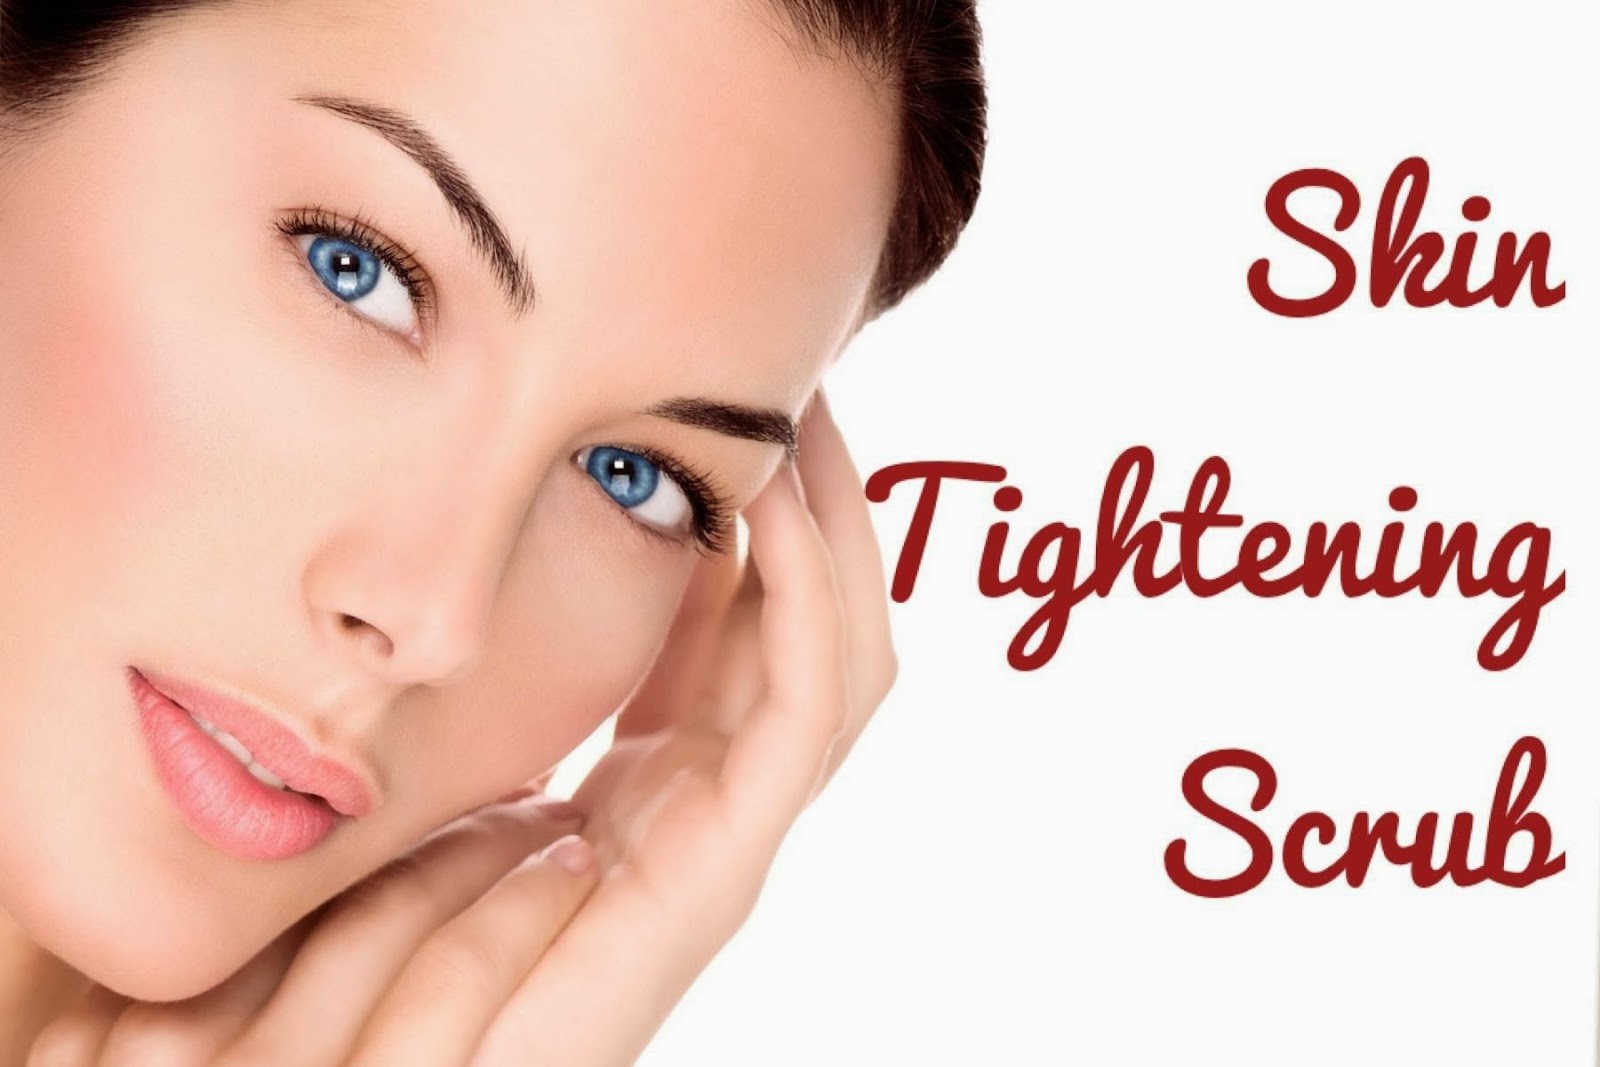 Scrub for skin tightening, skin tightening, how to tighten skin, skin tightening, home remedies for skin tightening , DIY skin tightening , home remedies scrub for skin tightening, oats scrub, tomato scrub, curd scrub, yogurt scrub, oats tomato and yogurt scrub,How to make face scrub, how to make scrub, how to make easy scrub, how to make scrub easily, how to make face scrub easy, how to make scrub in no time, how to make scrub with kitchen ingredients, how to make scrub at home, how to make face scrub at home , how to make scrub easily at home, how to make face scrub easily at home, how to make scrub at home in no time , how to make face scrub at home with with milk , how to make face scrub at home with milk, how to use milk as scrub, how to use semolina as scrub, how to use semolina as face scrub, how to use milk and semolina as scrub, how to use milk and semolina as face scrub,  DIY face scrub, DIY scrub, DIY face treatment, DIY treatment, DIY milk scrub, DIY semolina scrub, DIY mil and semolina scrub, home remedies for face, home remedies for skin, home remedies fir face skin, home remedies for dead skin, home remedies for face dead skin, home remedies for impurities, home remedies for skin impurities, home remedies for face skin impurities, how to get rid of dead skin, how to get rid of face dead skin, how to get rid of impurities, how to get rid of skin impurities, how to get rid of face skin impurities, how to get rid of dead skin, how to get rid of dead skin and impurities, how to clean your skin, how to deep clean your skin, home remedies to clean your skin, home remedies to deep clean your skin, home remedies to deep clean skin, home remedies to clean skin, home made scrub, home made face scrub , home remedies for acne prone skin, home remedies for sensitive skin, home remedies for pimples, scrub for sensitive skin, scrub for normal skin, scrub for day skin, scrub for acne, mild scrub, mild face scrub, how to make mild face scrub, how to make mild face scrub at home, how to make mild face scrub for sensitive skin, how to make mild face scrub for normal skin, how to make mild face scrub for dry skin, scrub for normal sin, scrub for dry skin, scrub for sensitive skin, scrub for oily skin, oily skin care, normal skin care, dry skin care, acne skin care, how to take care of oily skin, how to take care of dry skin, how to take care of normal skin, how to take care of acne prone skin, how to take care of skin,home remedies for oily skin, home remedies for dry skin, home remedies for normal skin,home remedies for acne prone skin,beauty , fashion,beauty and fashion,beauty blog, fashion blog , indian beauty blog,indian fashion blog, beauty and fashion blog, indian beauty and fashion blog, indian bloggers, indian beauty bloggers, indian fashion bloggers,indian bloggers online, top 10 indian bloggers, top indian bloggers,top 10 fashion bloggers, indian bloggers on blogspot,home remedies, how to